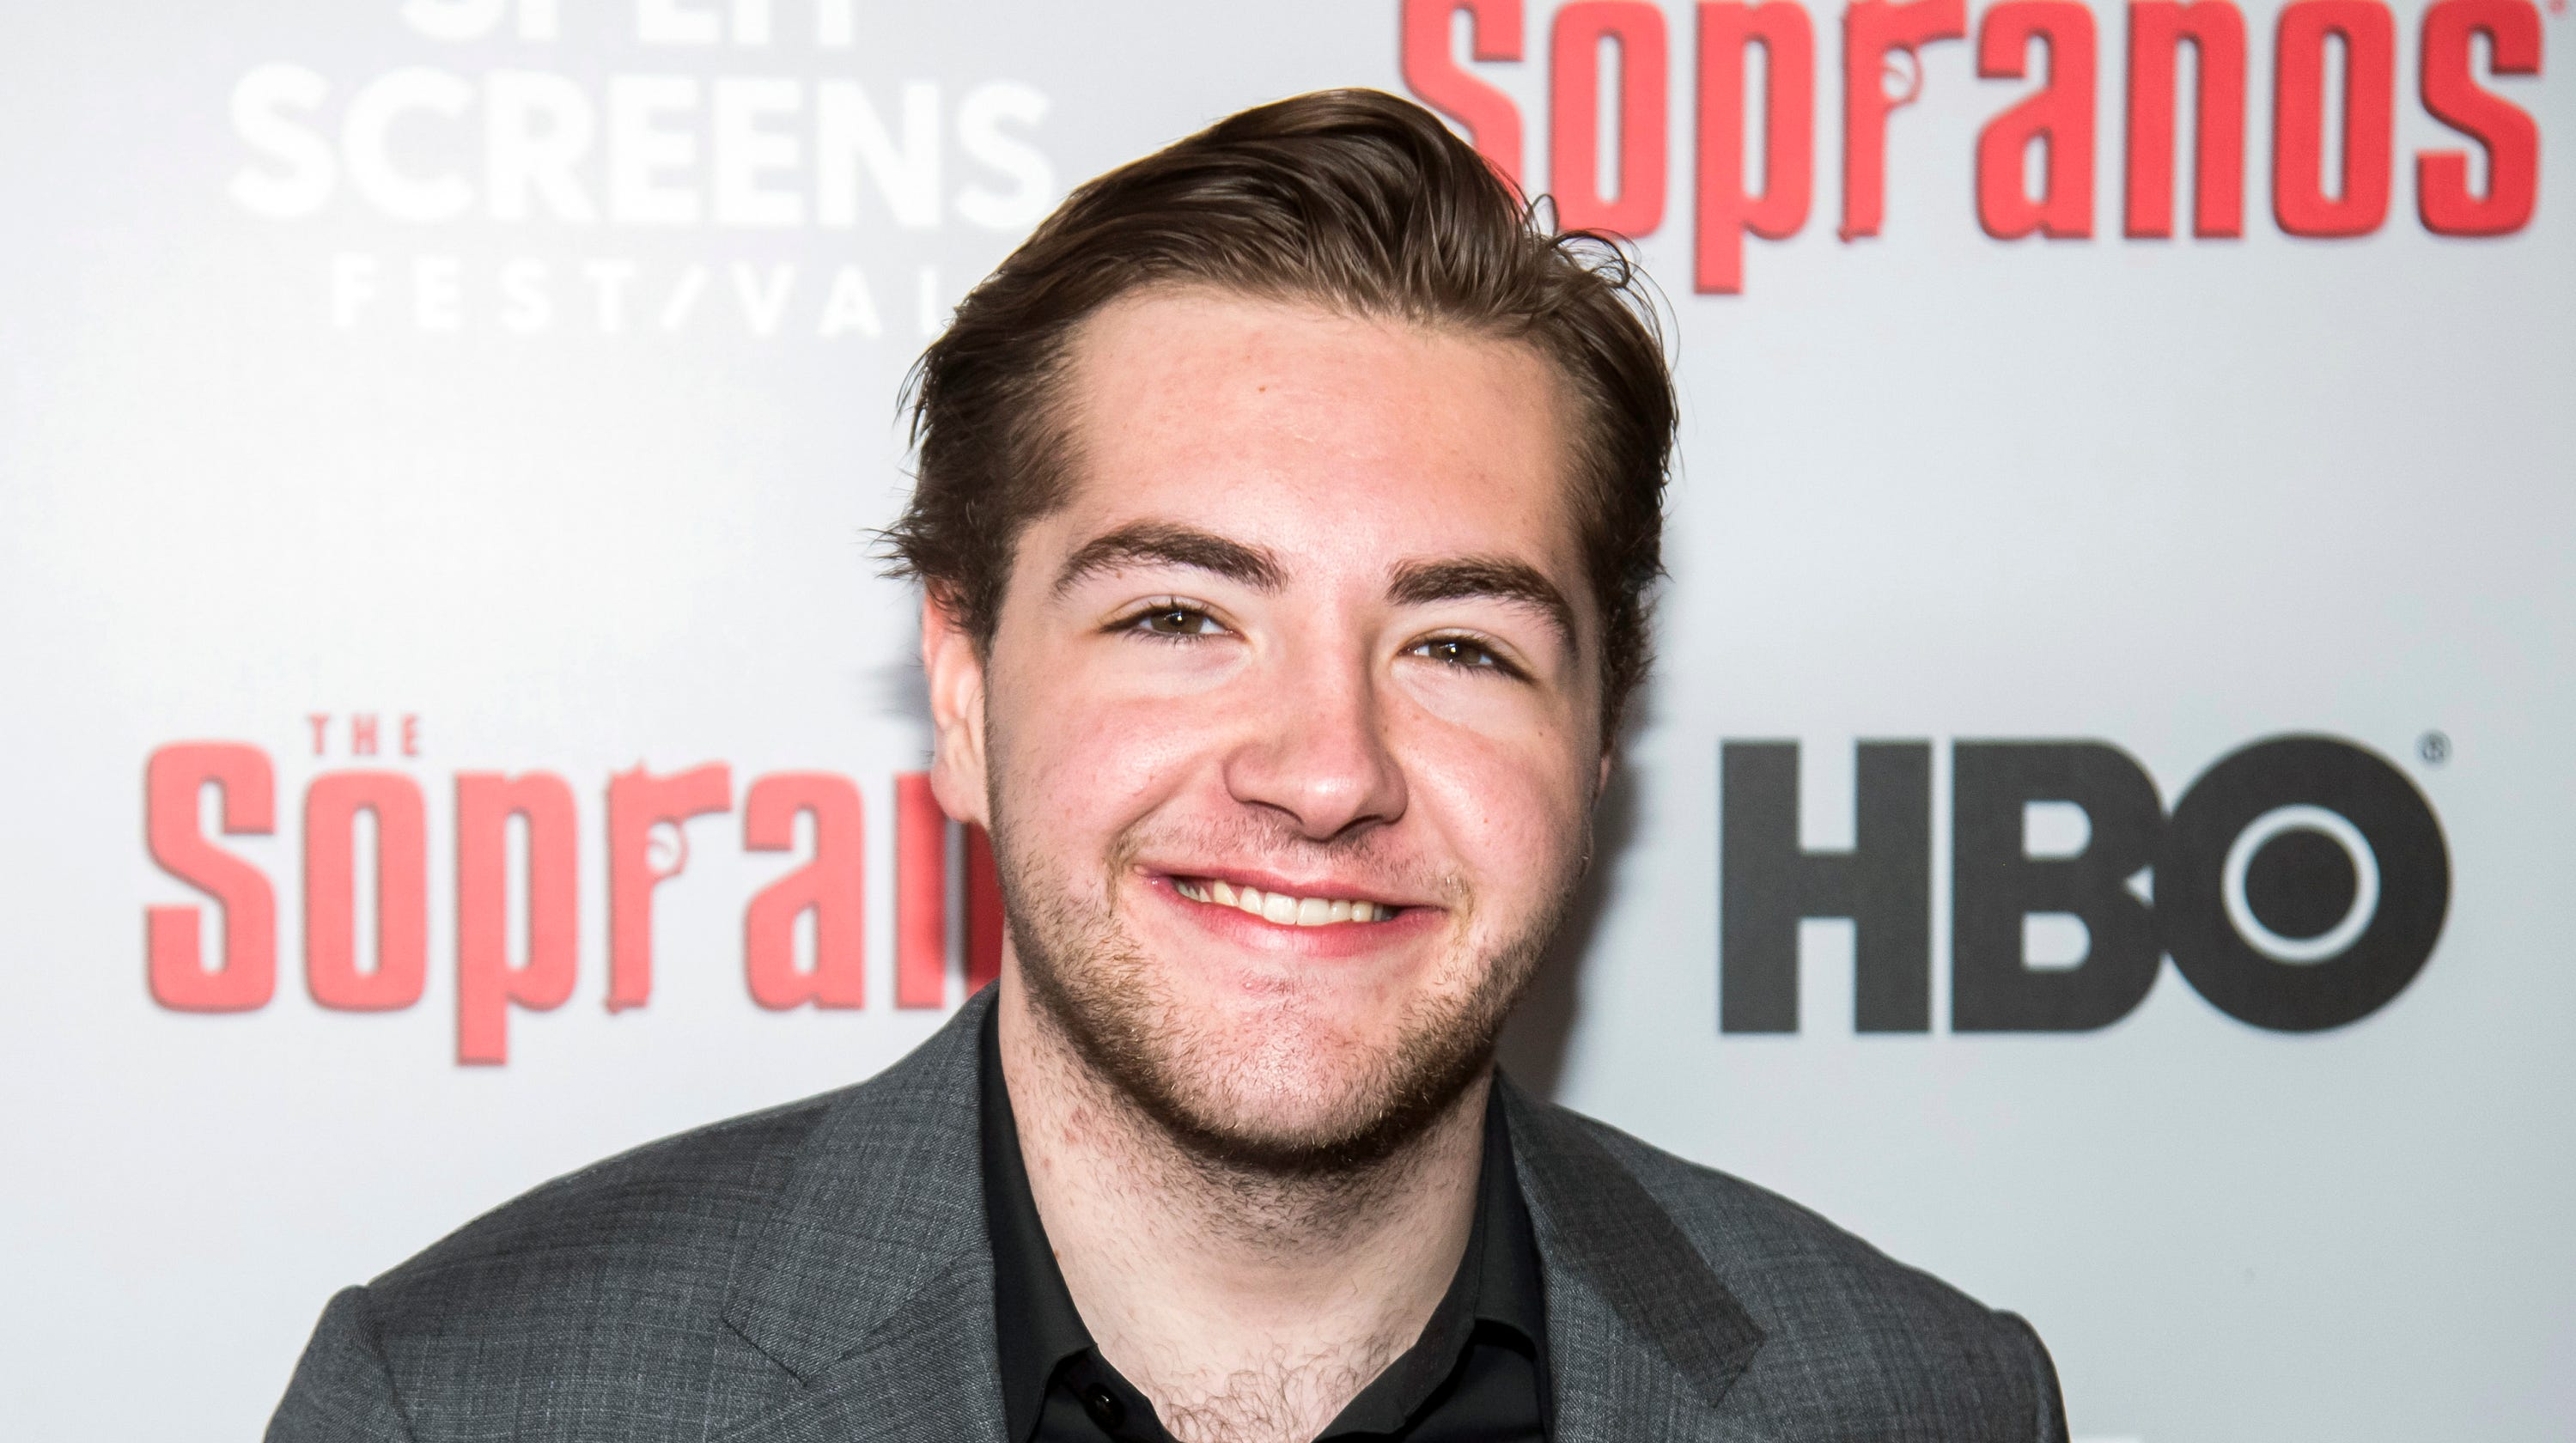 James Gandolfini's son cast as young Tony for 'Sopranos' prequel - USA TODAY thumbnail